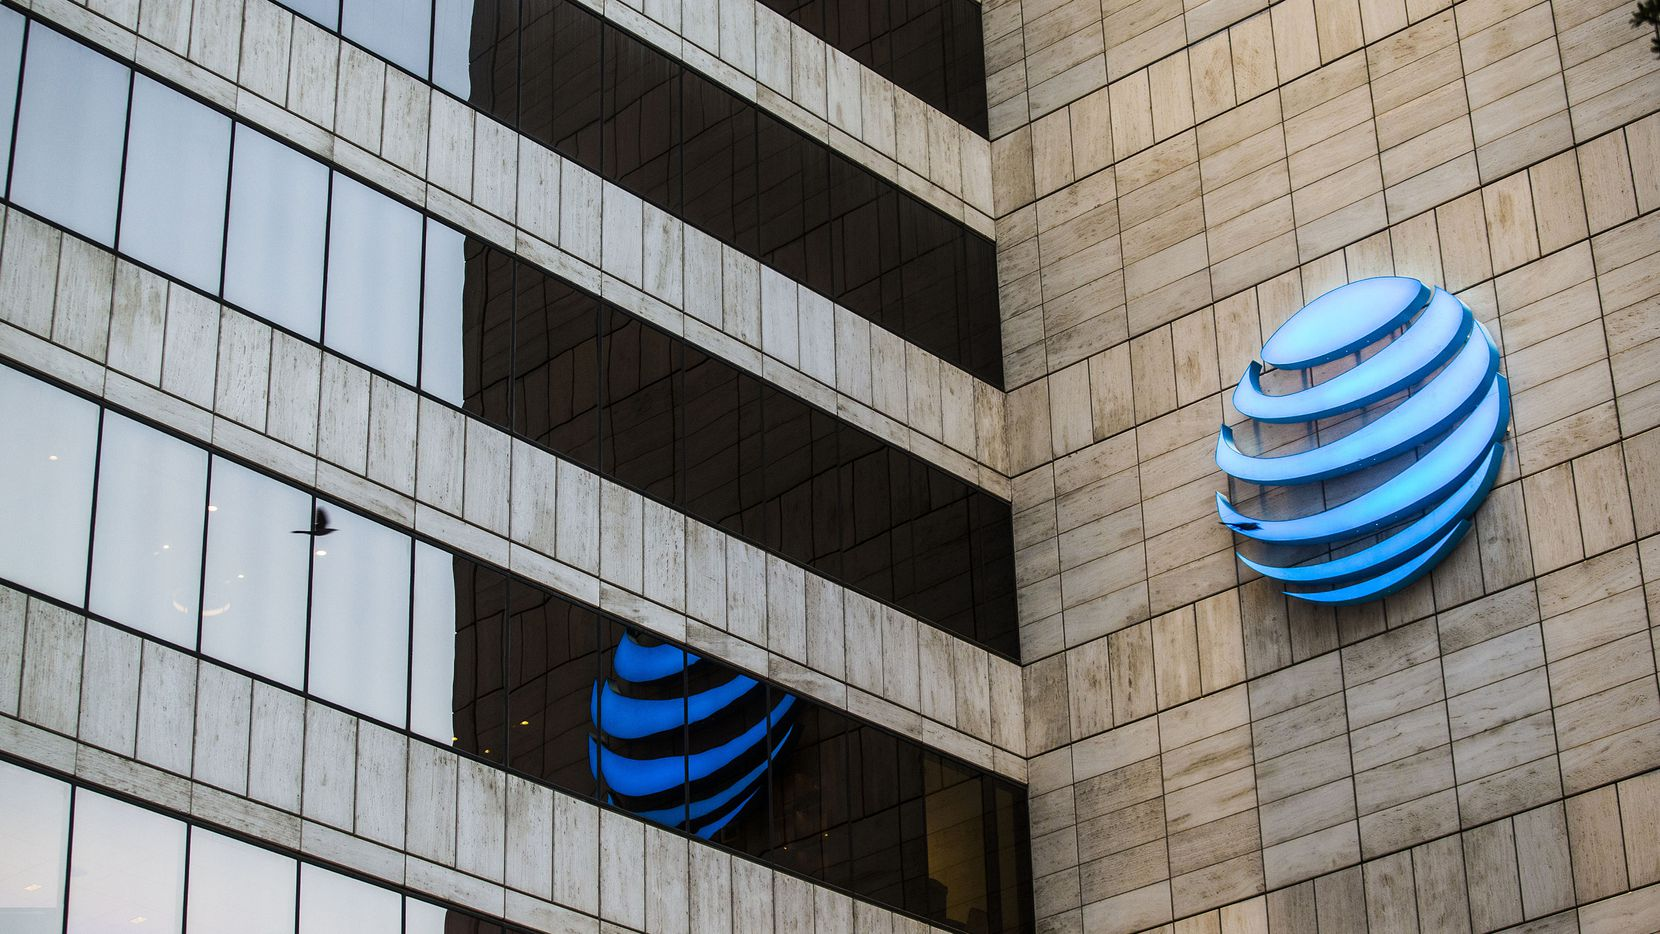 Executives at AT&T, whose headquarters is in downtown Dallas, helped push for corporate tax cuts in 2017 and were among the companies handing out $1,000 bonuses to employees. (Carly Geraci/The Dallas Morning News/TNS)